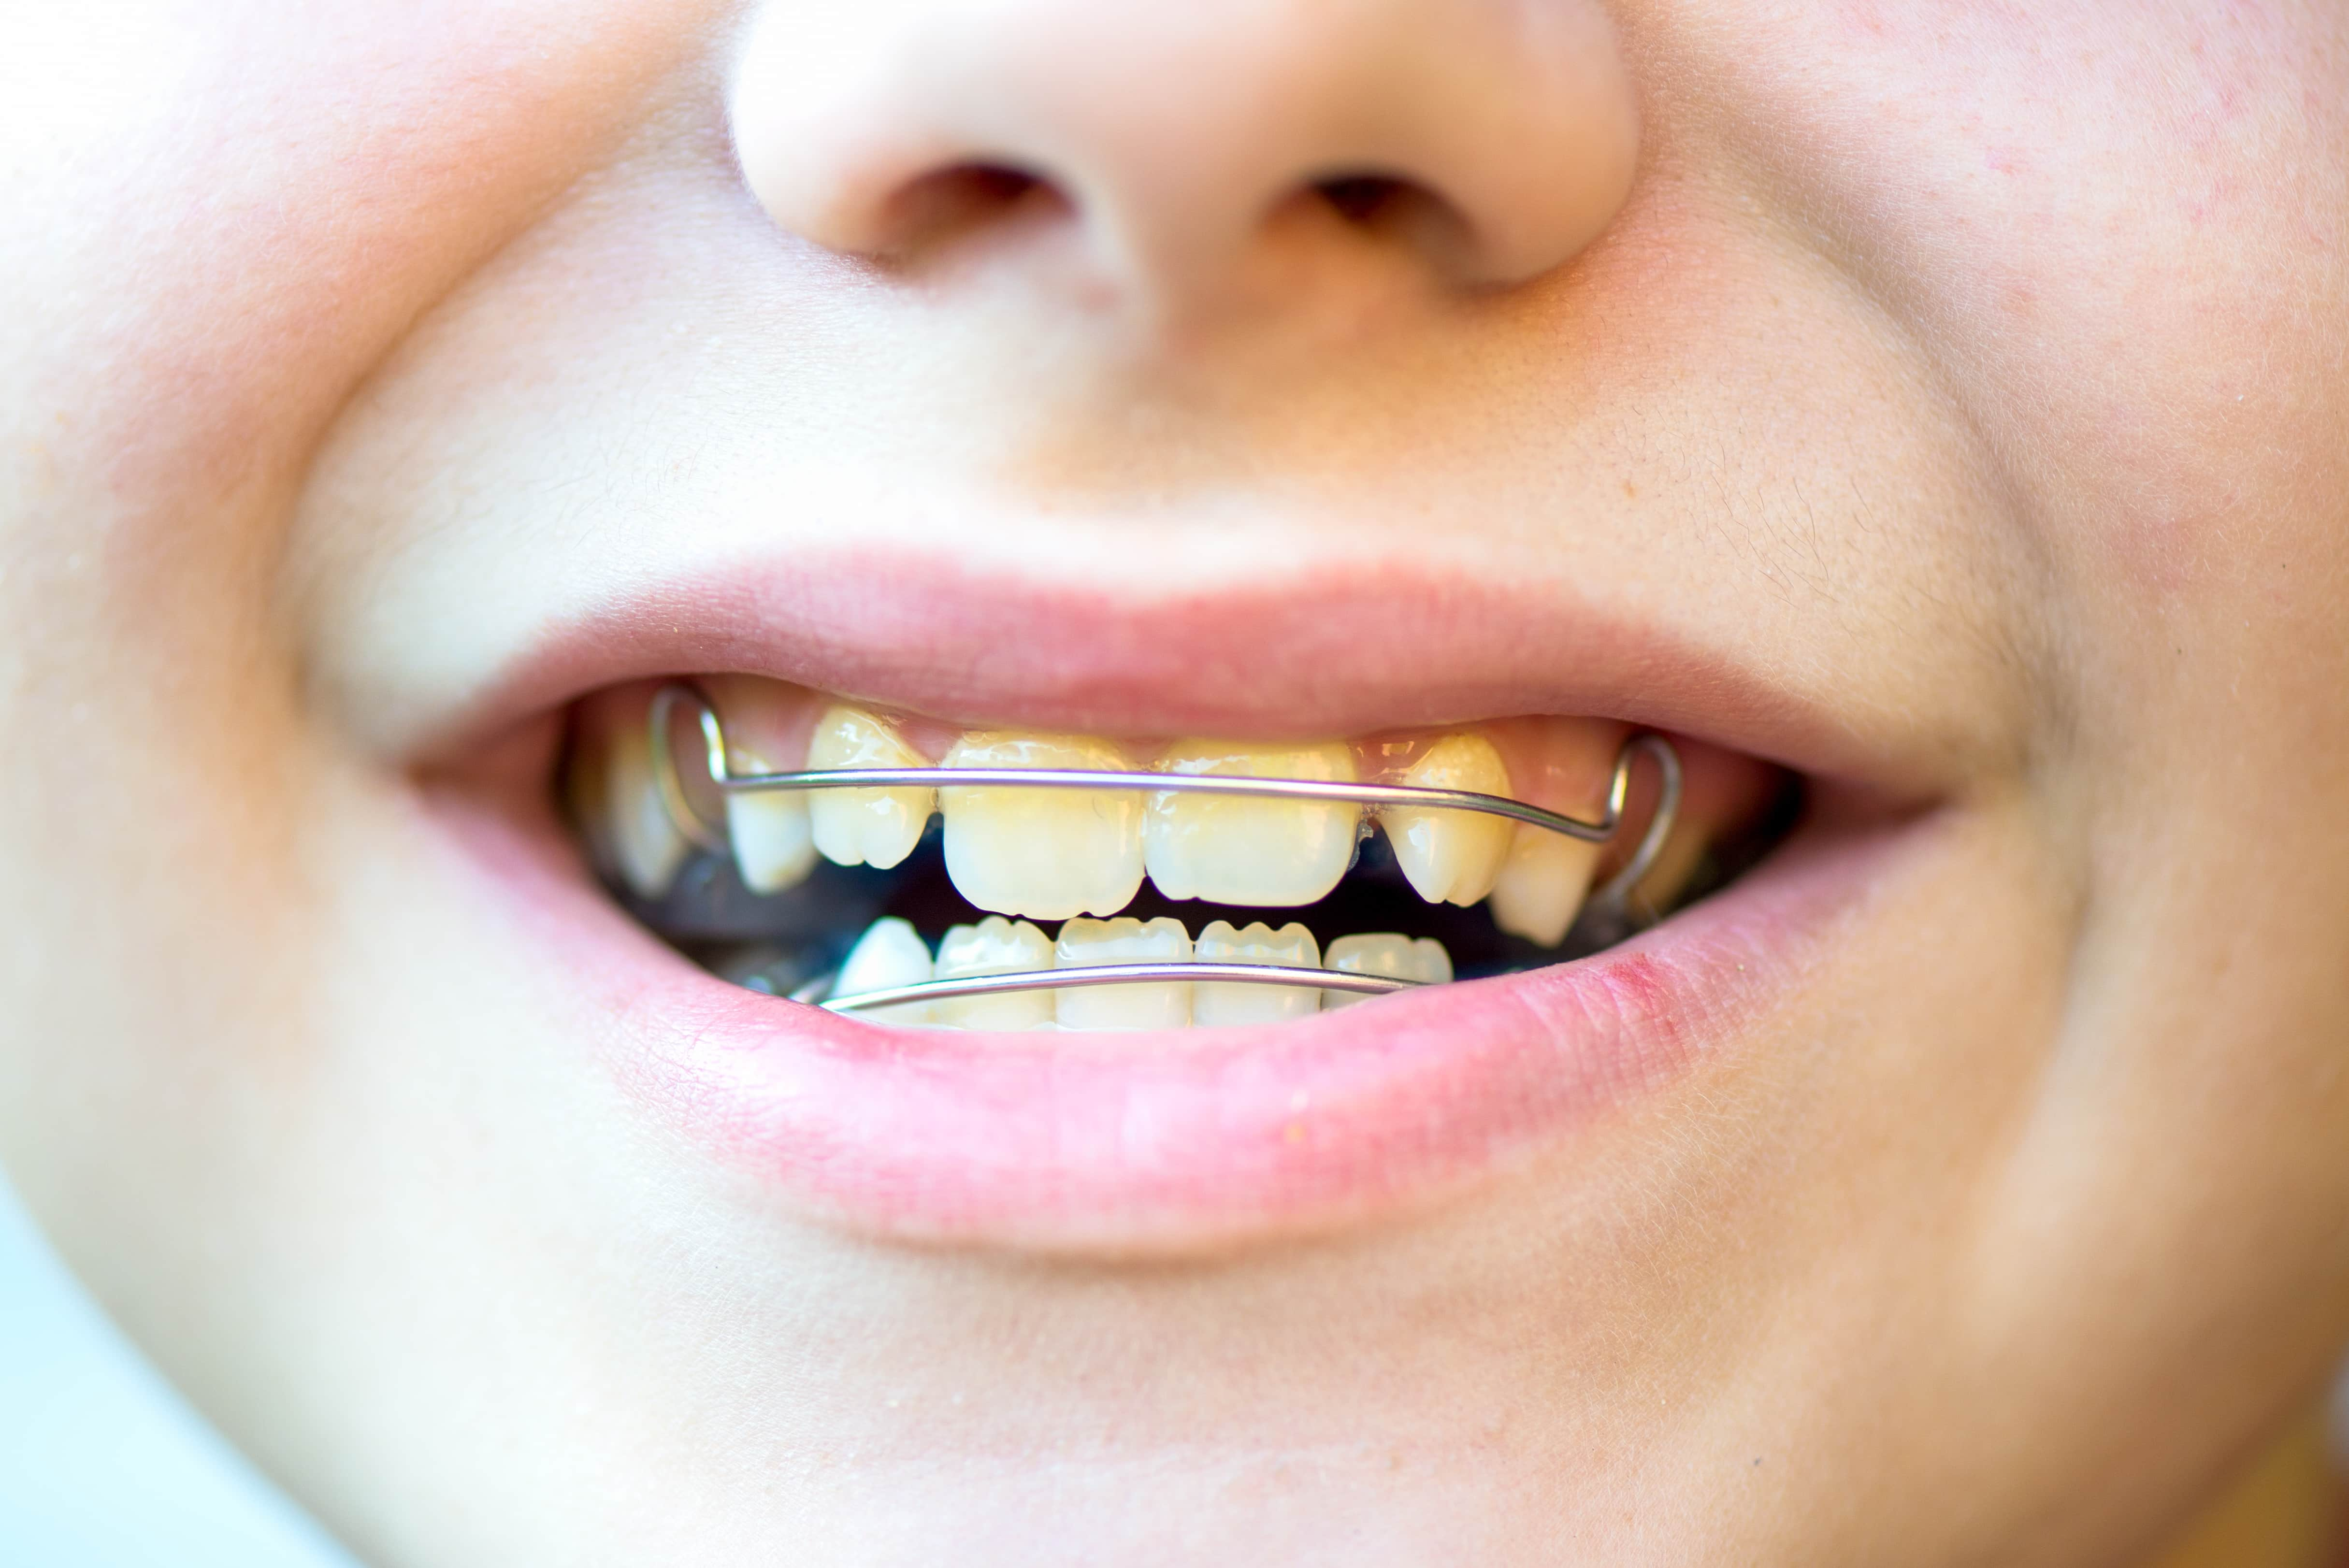 Dental Blue Removable Braces or Retainers for Teeth in the Boys Mouth, Orthodontic concept